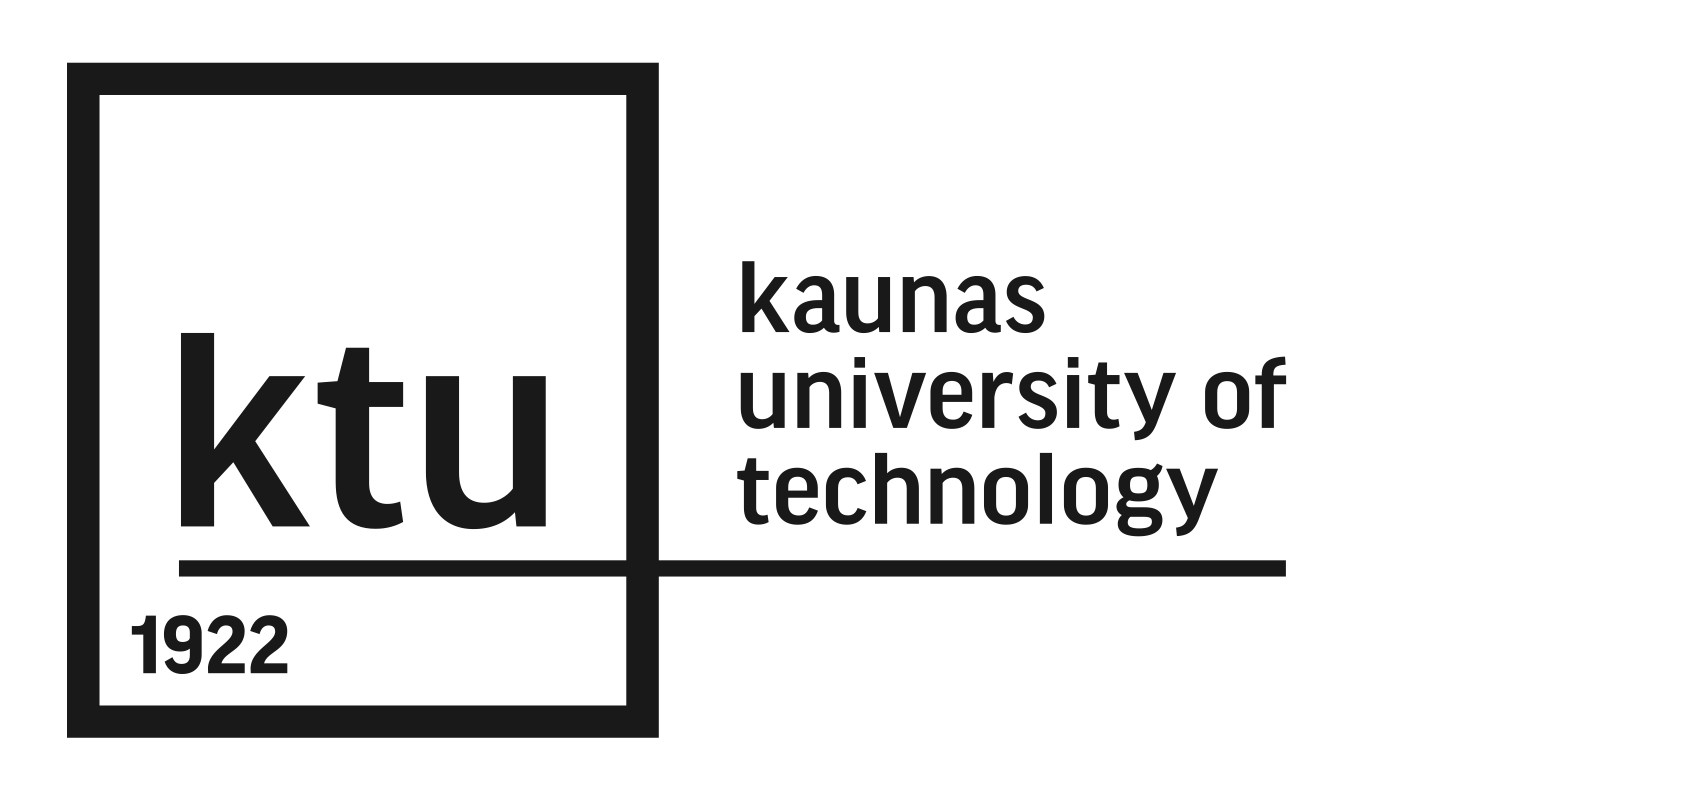 kaunas-university-of-technology